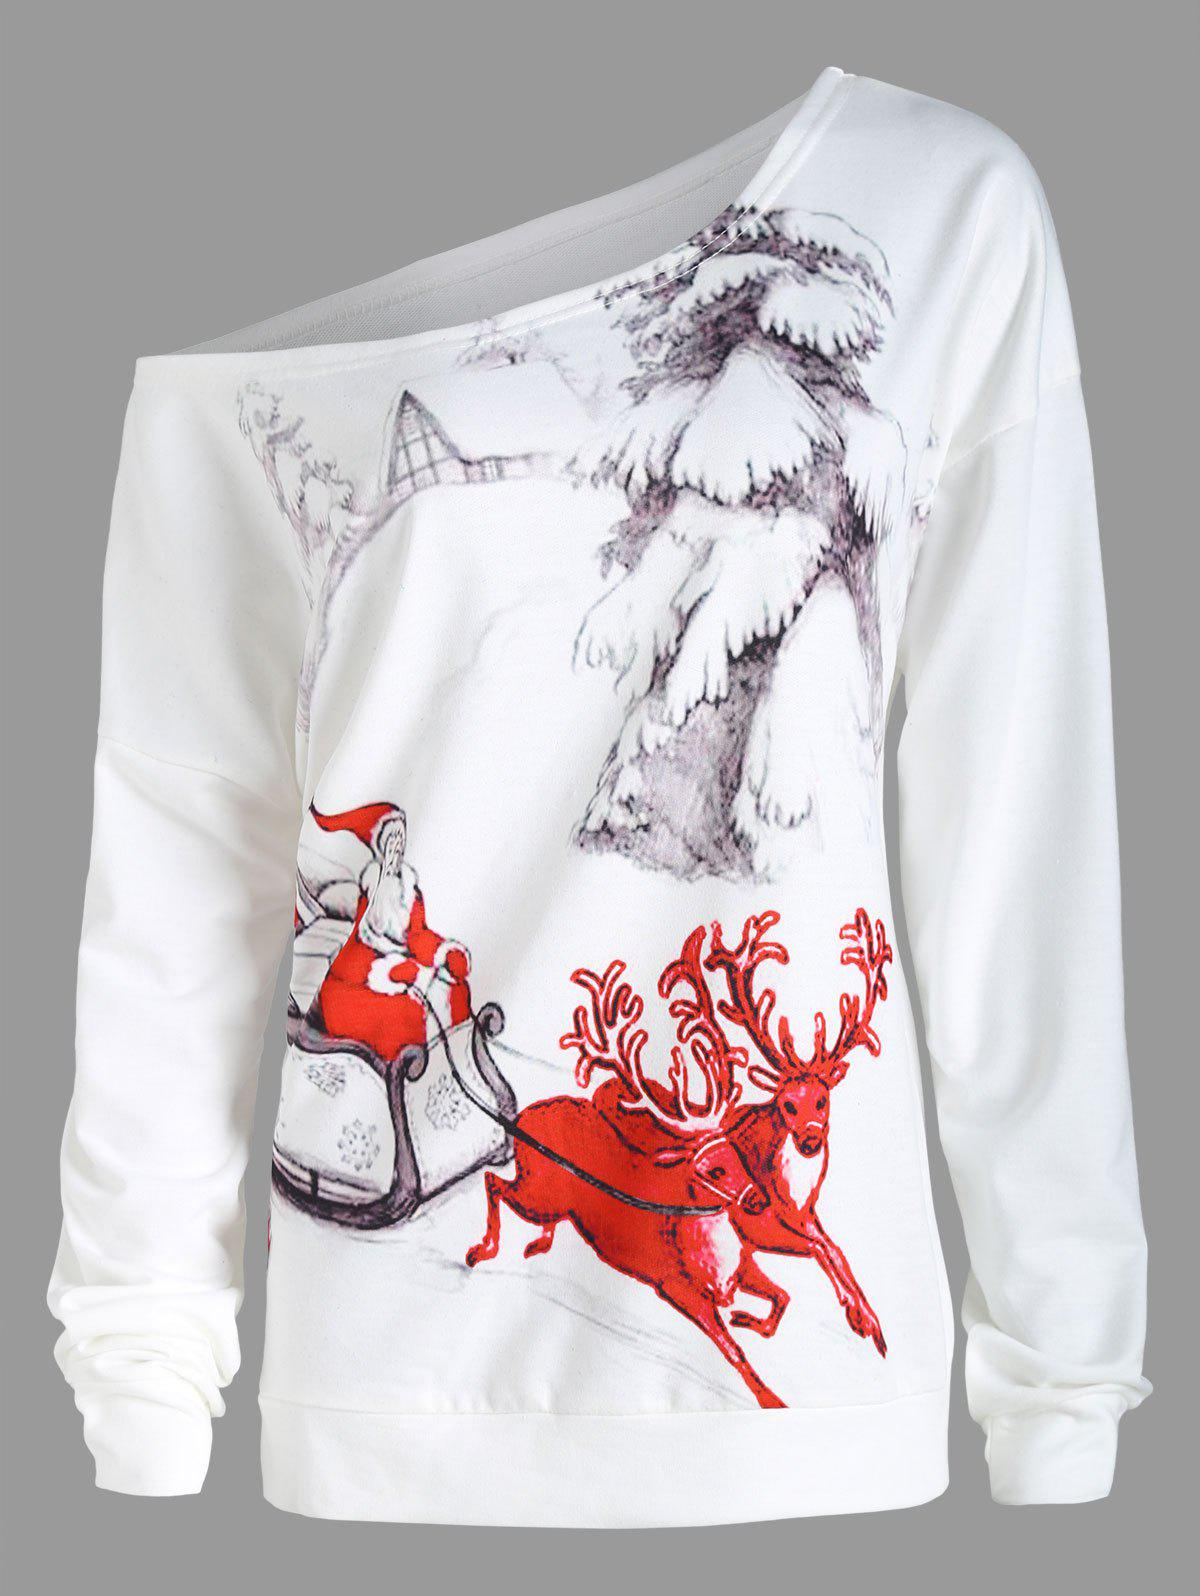 Christmas Sleigh Plus Size Skew Neck SweatshirtWOMEN<br><br>Size: XL; Color: WHITE; Material: Cotton Blend,Polyester; Shirt Length: Regular; Sleeve Length: Full; Style: Fashion; Pattern Style: Animal,Character; Season: Fall,Winter; Weight: 0.3900kg; Package Contents: 1 x Sweatshirt;